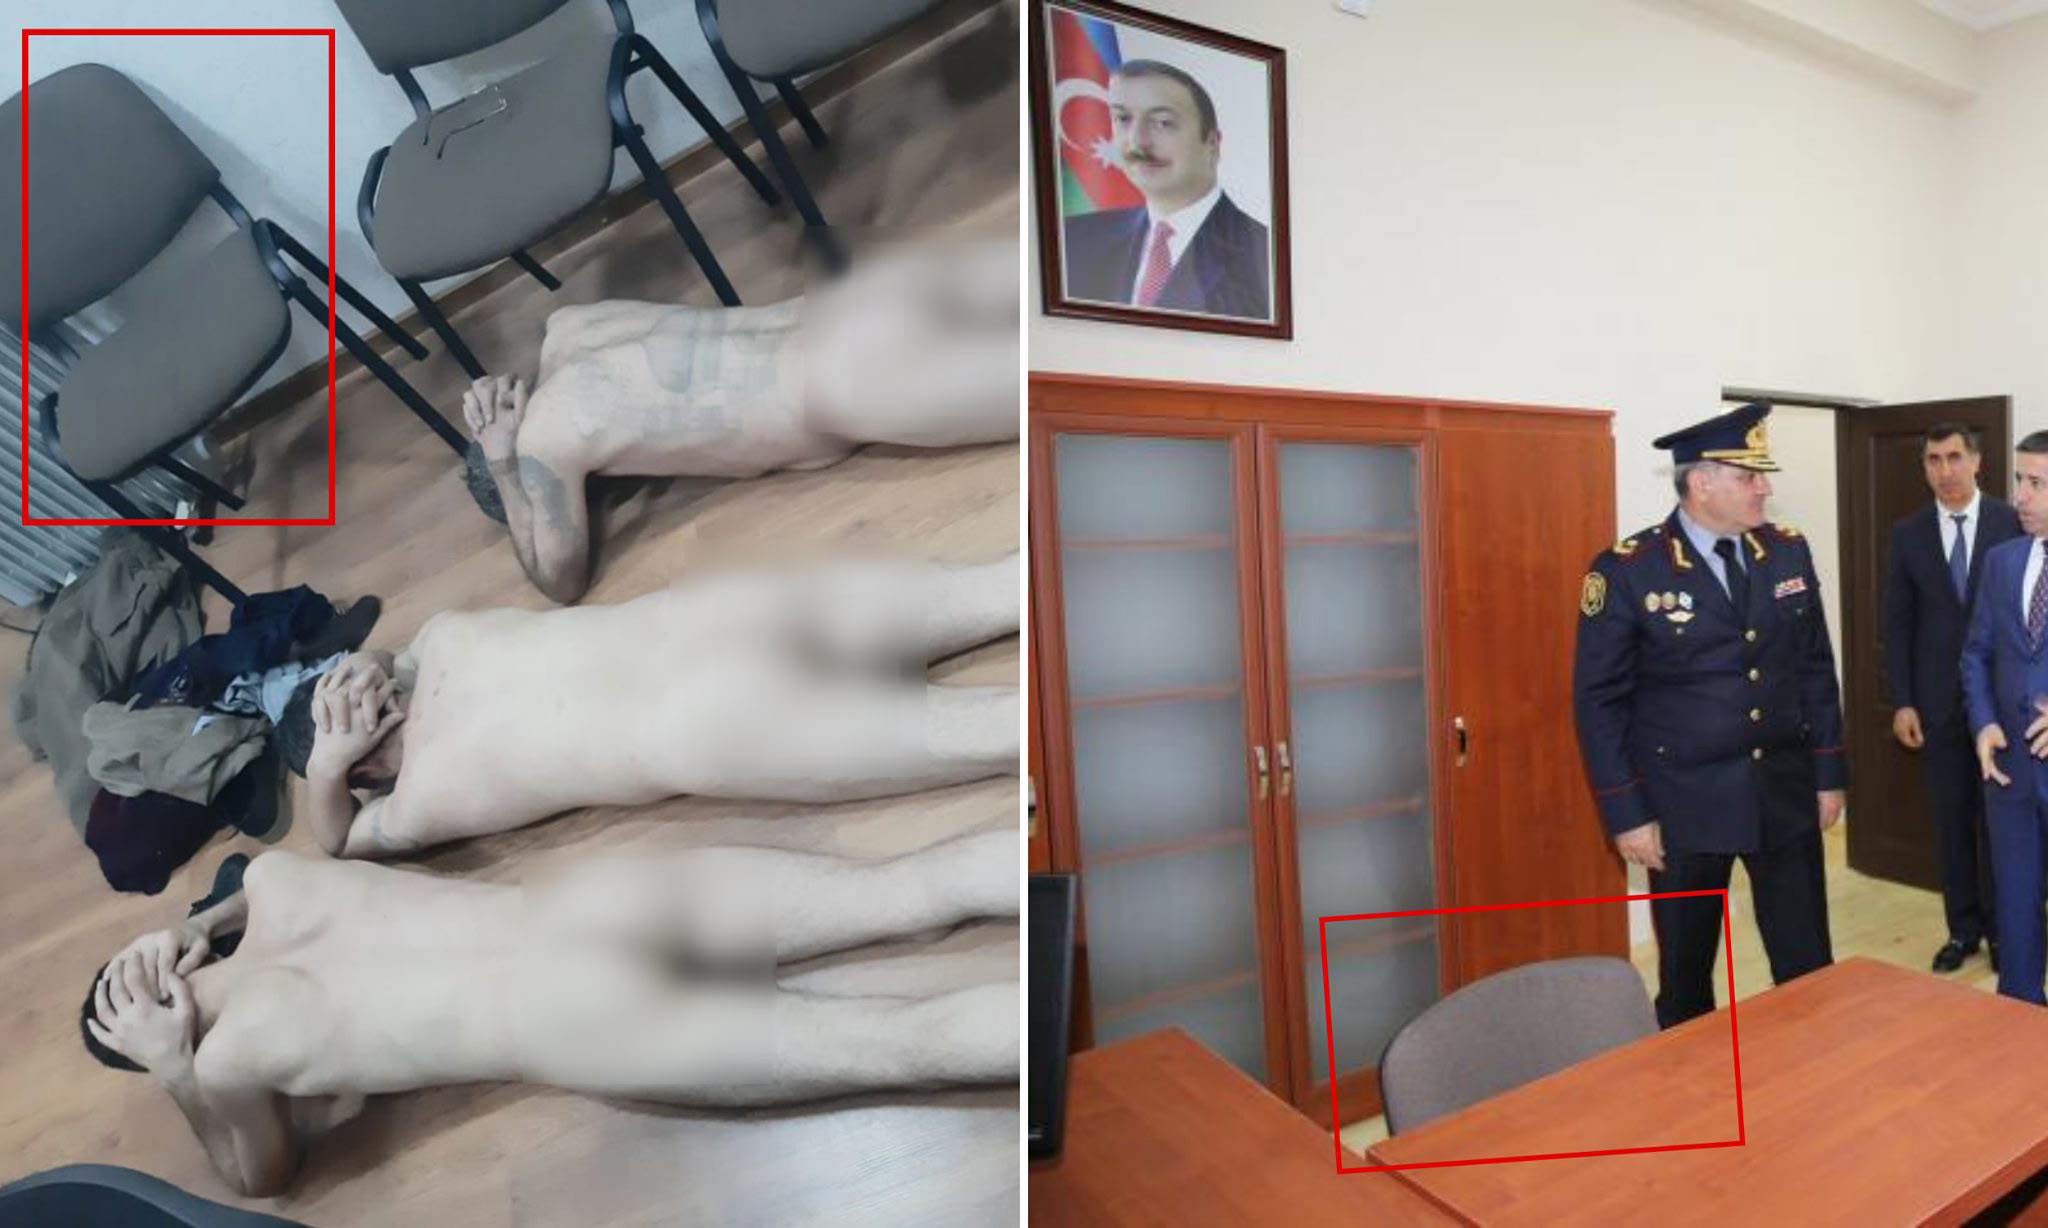 Muntazir said that the furniture and chairs in the photos matched the standard furnishings in Azerbaijani police stations. Image via Habib Muntazir.